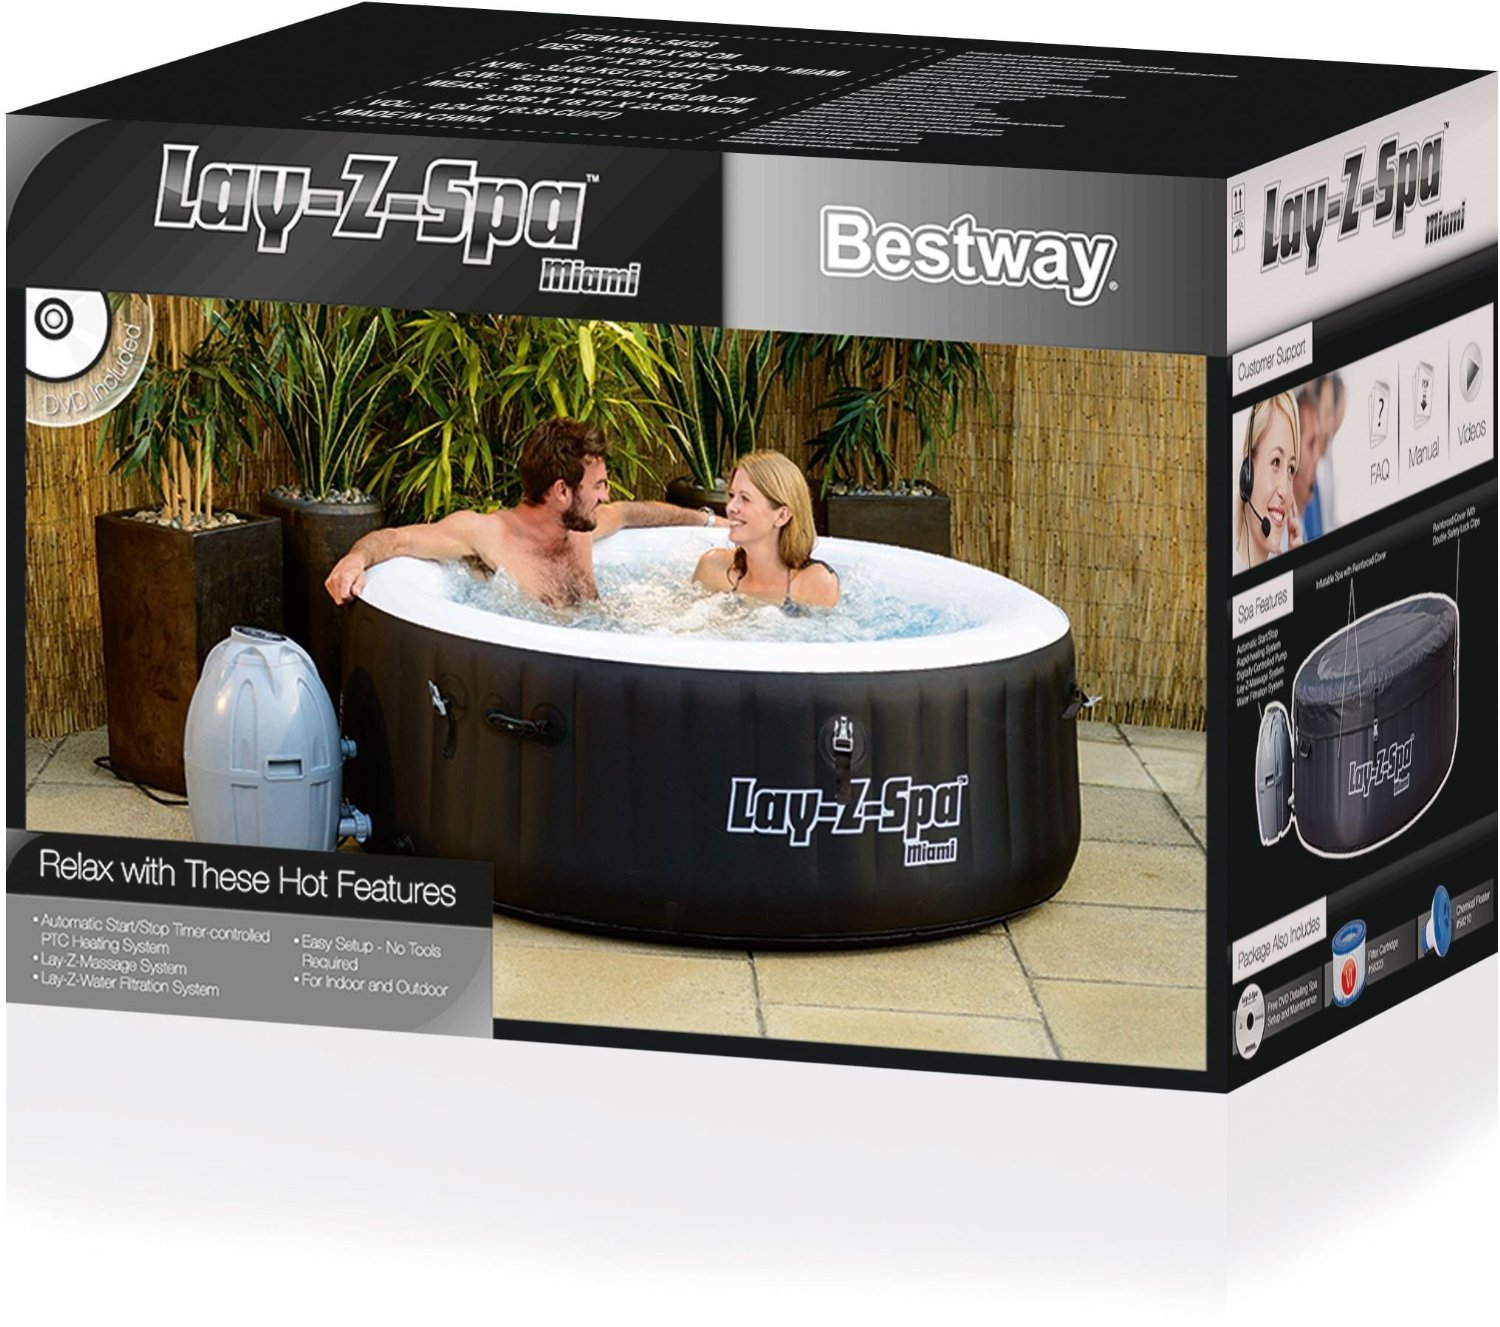 bestway whirlpool lay z spa miami 180x65 cm mit pumpe zubeh r in ovp neu. Black Bedroom Furniture Sets. Home Design Ideas